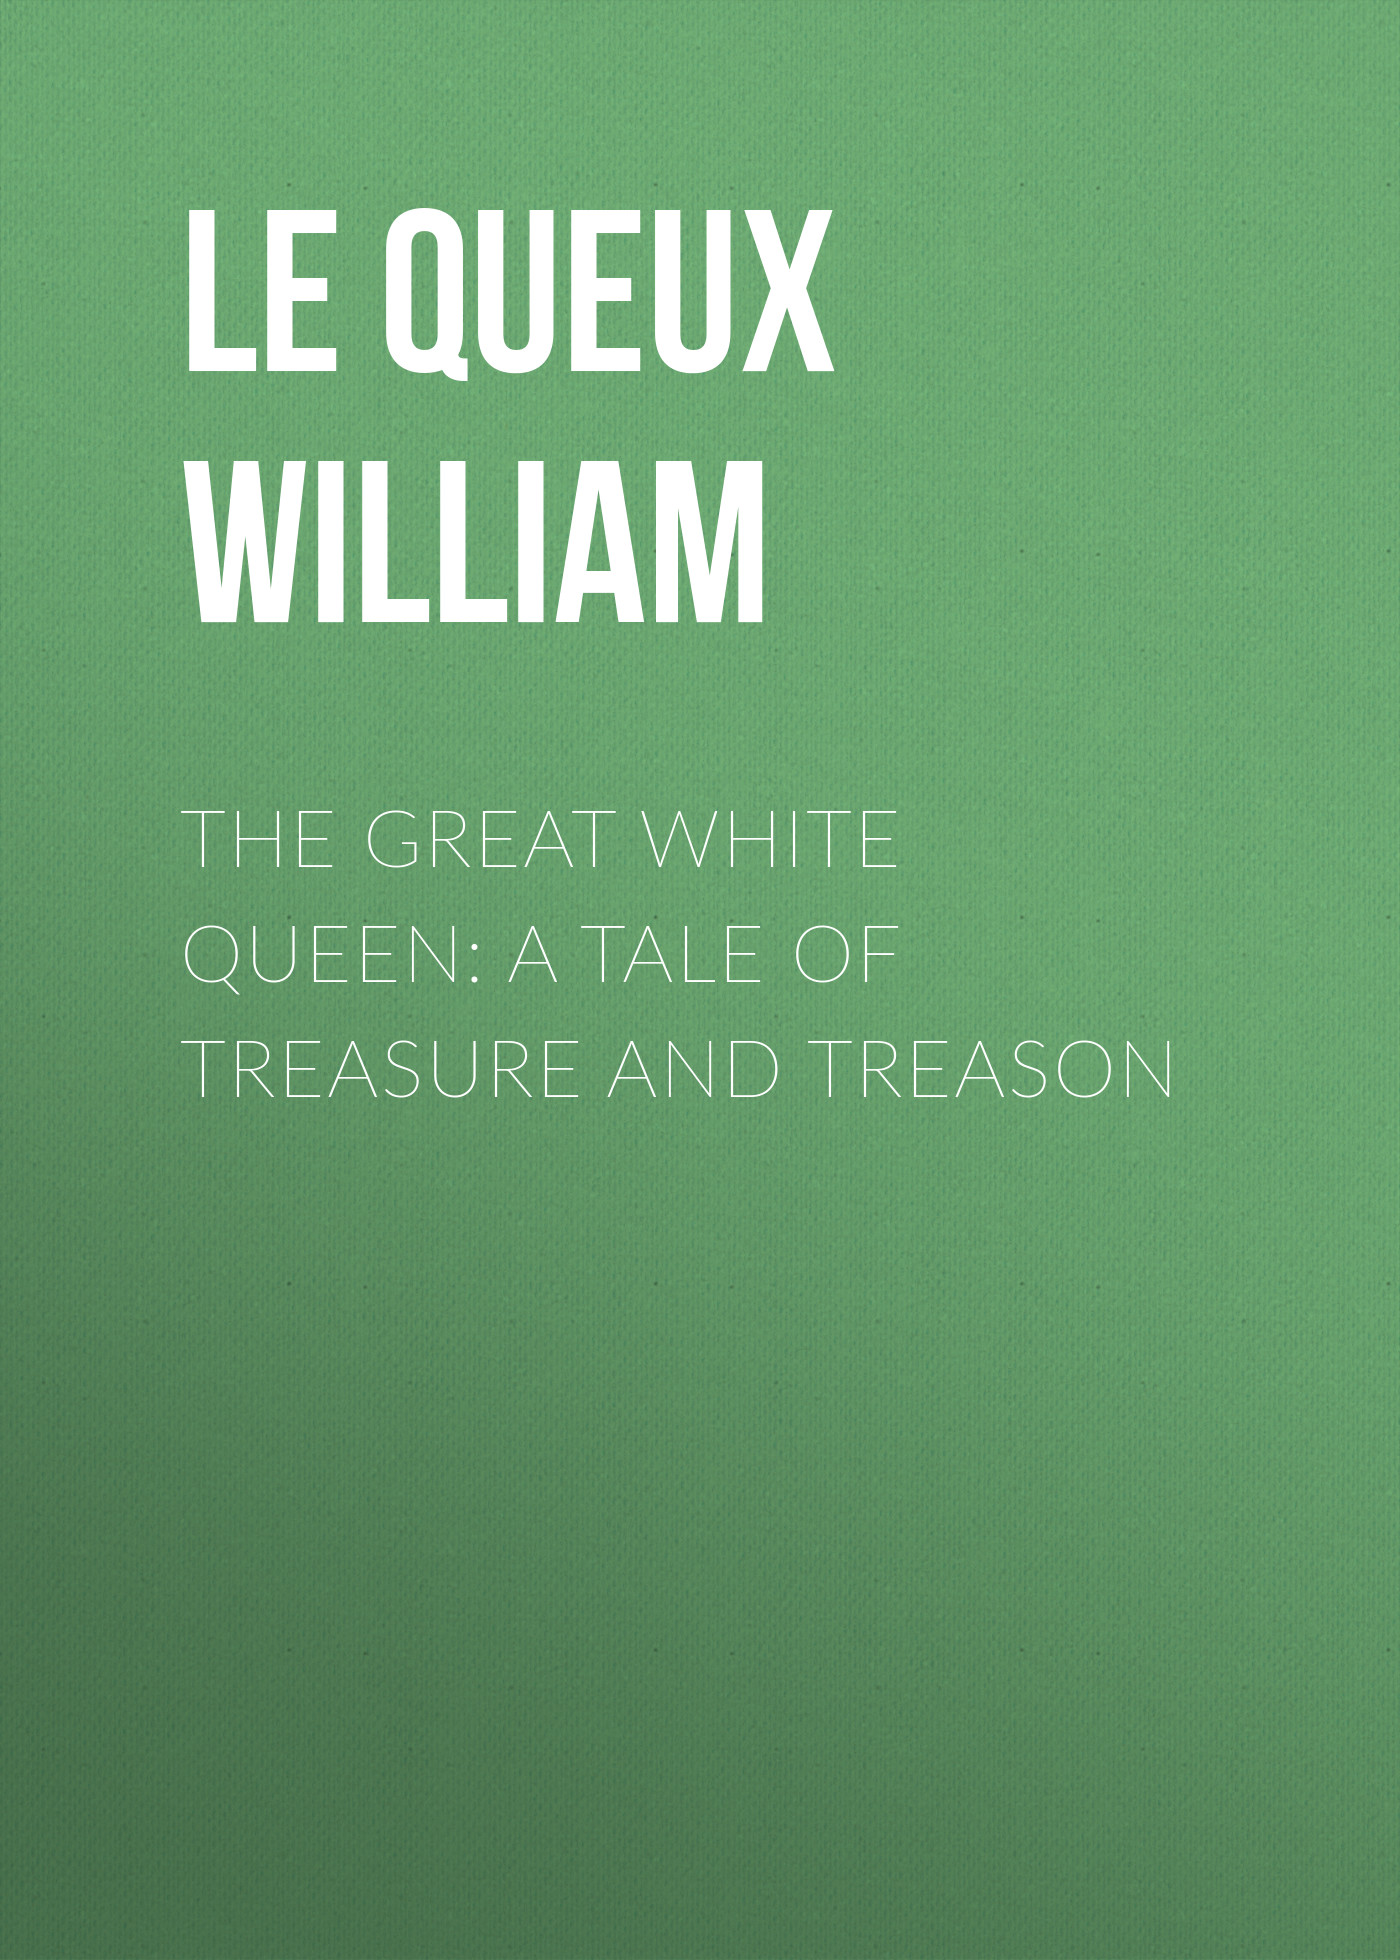 Le Queux William The Great White Queen: A Tale of Treasure and Treason